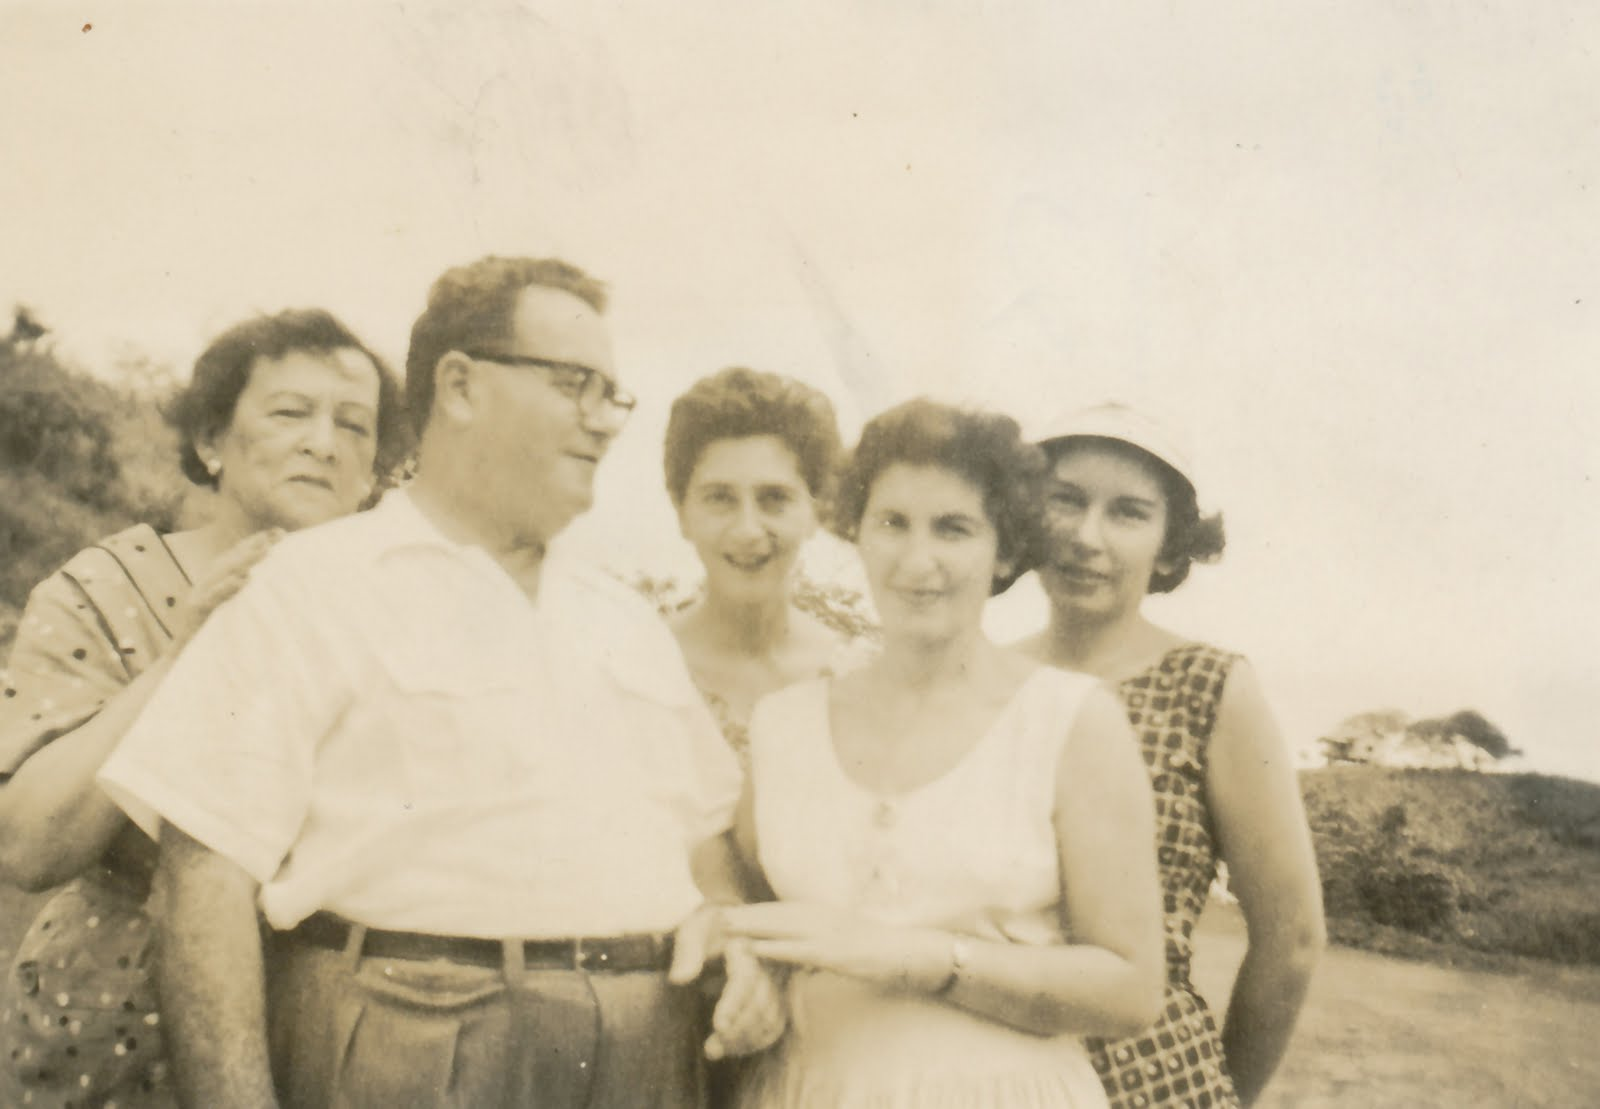 From left_ Lucy Fischler, Manea Sifnaghel, Gerda Sifnaghel (nee Gumpel), Ruth Czarninski, and Inge F